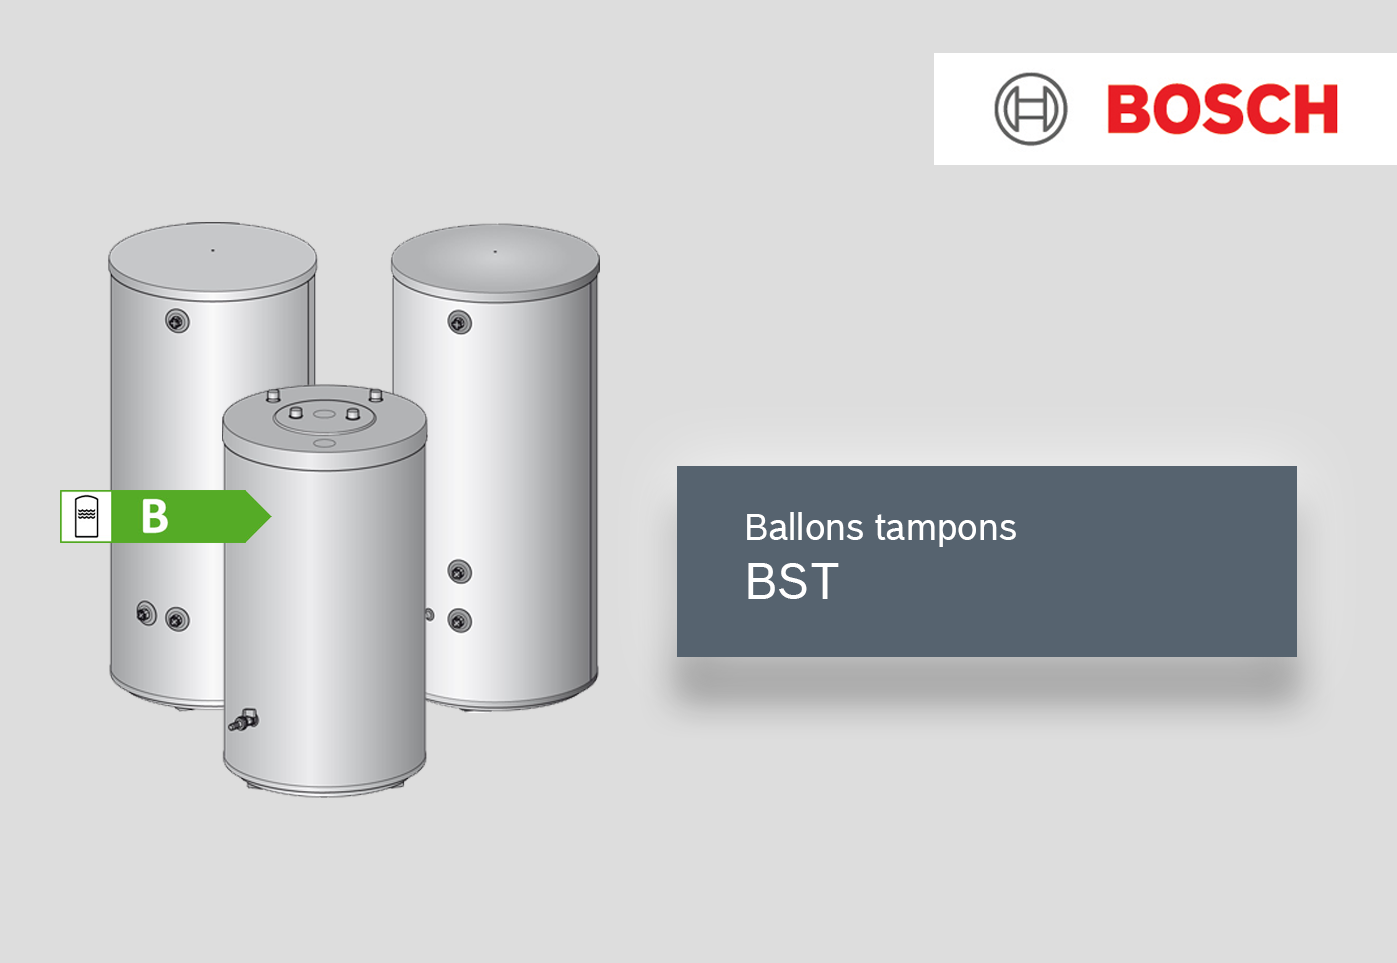 Ballons tampons BST